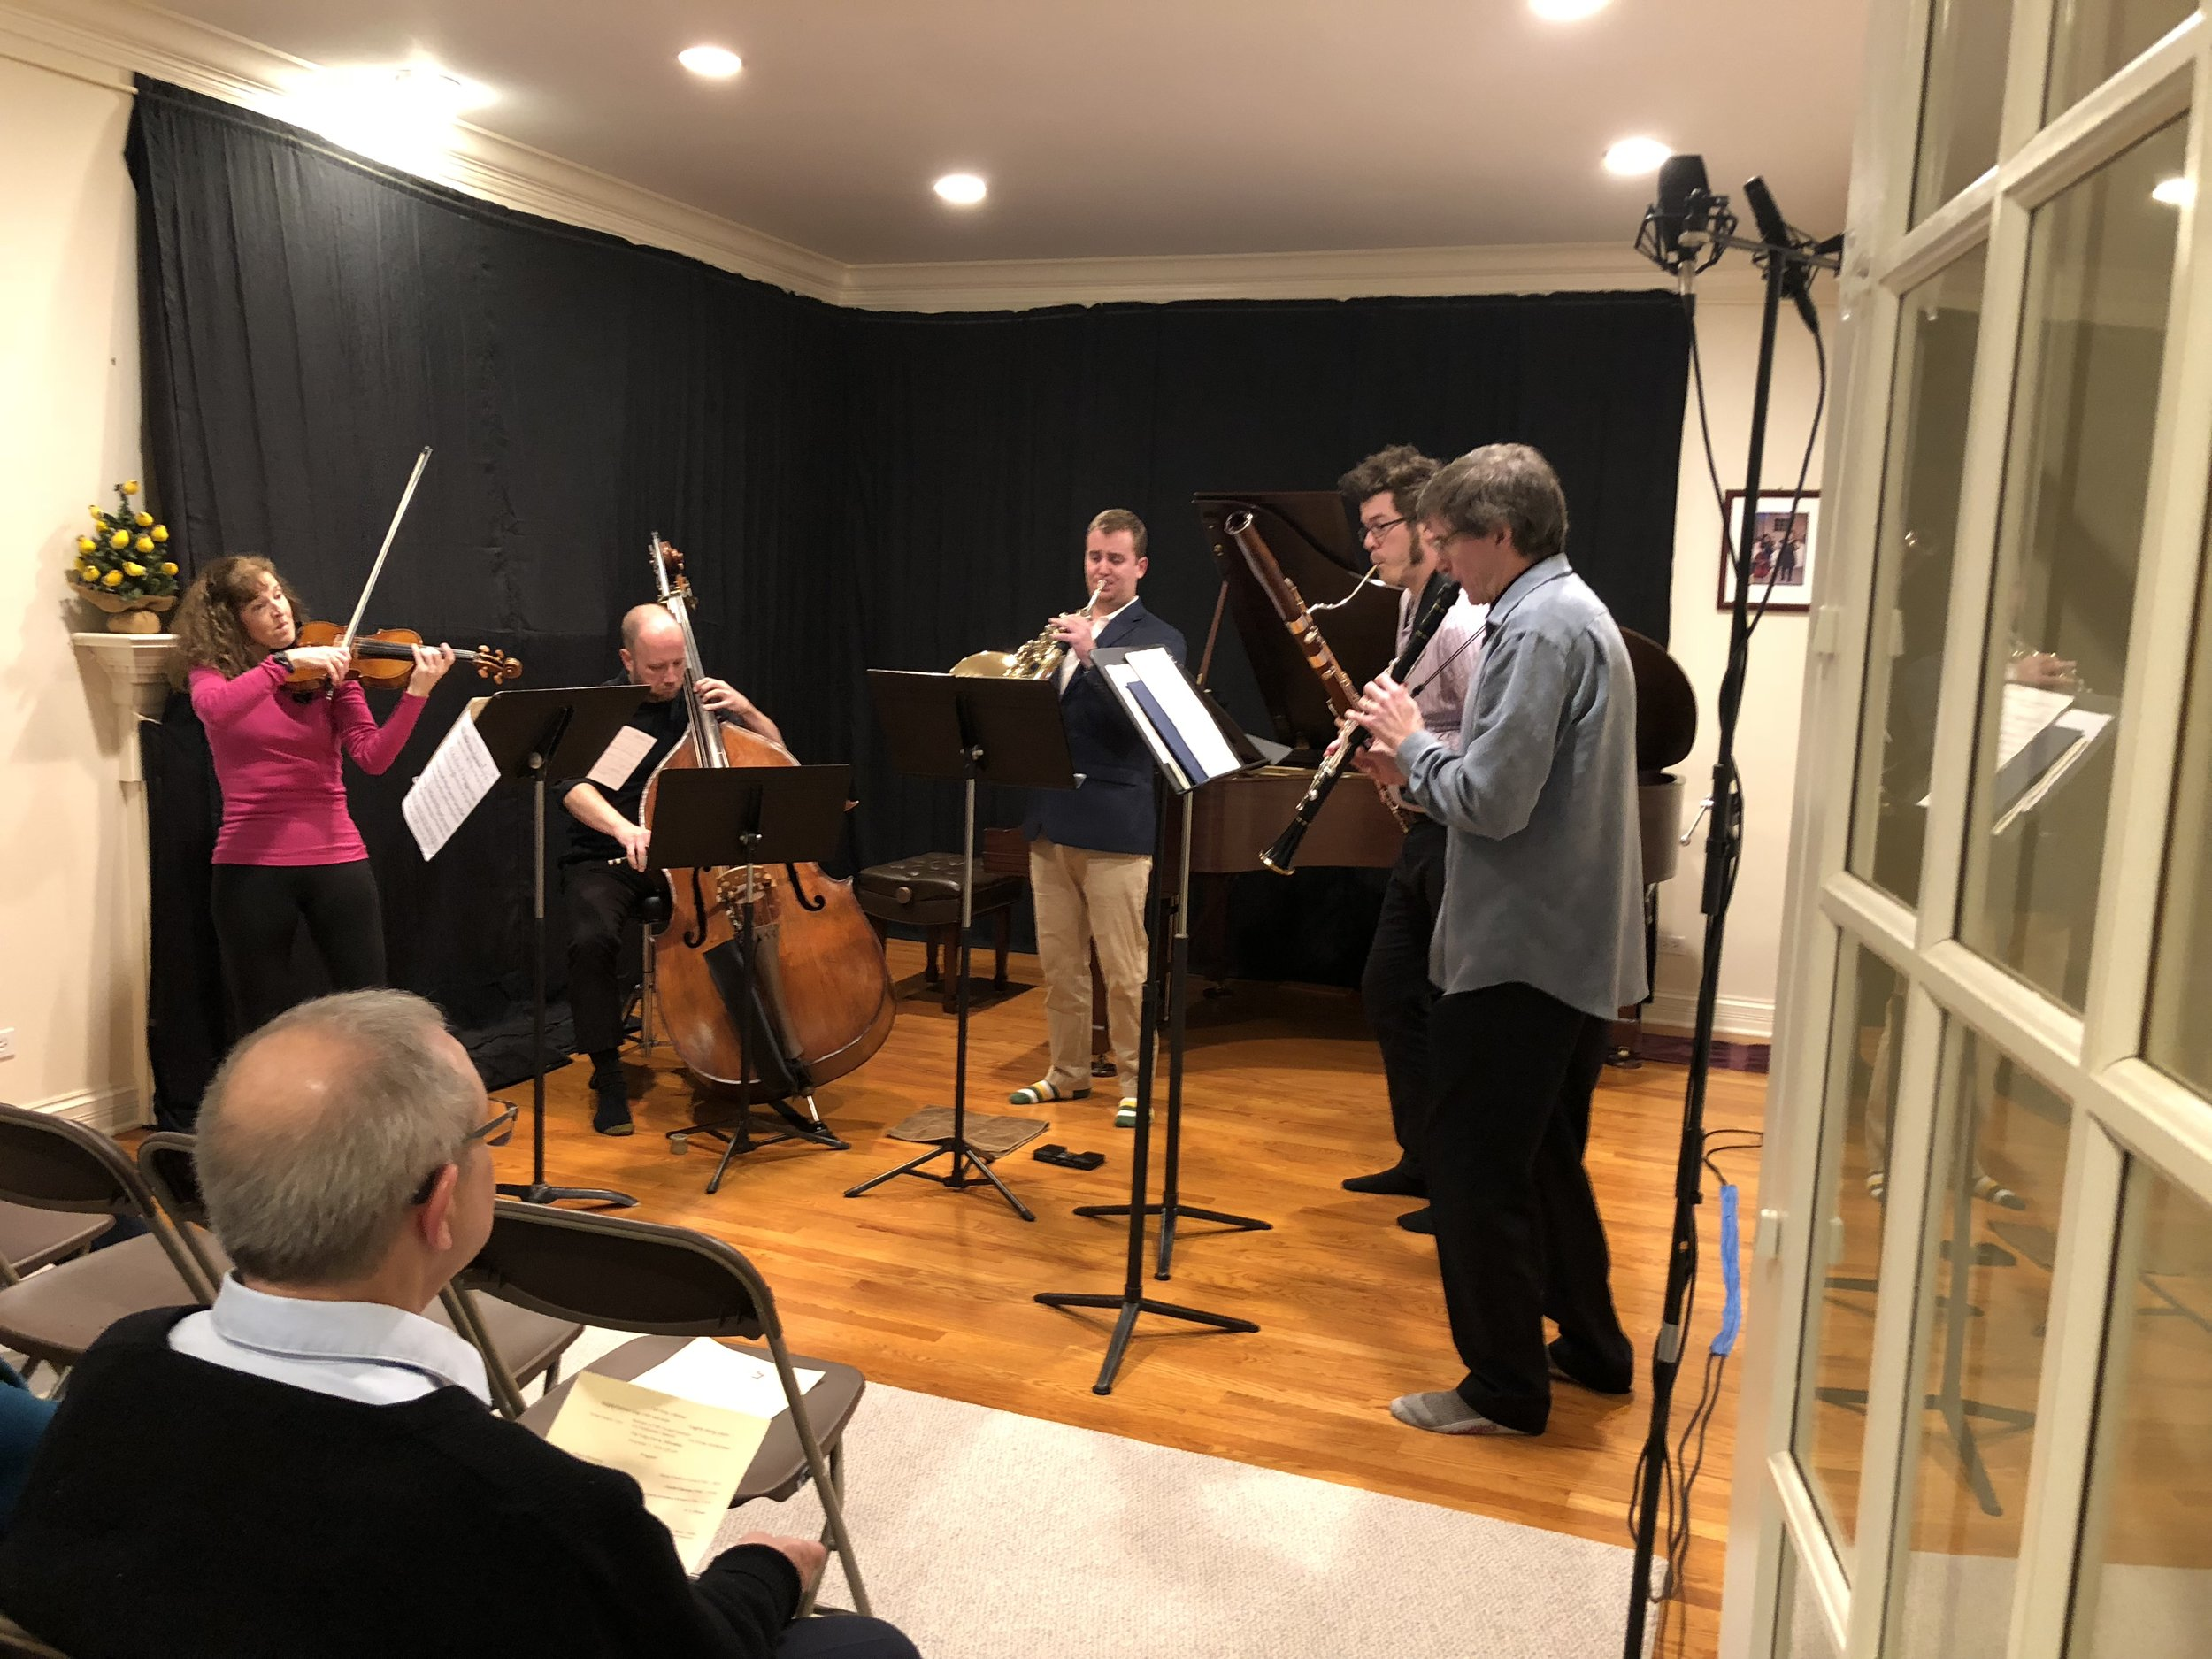 Salon concert: Tad, right, performs with his wife Brigitte, left, alongside members of Fifth House Ensemble